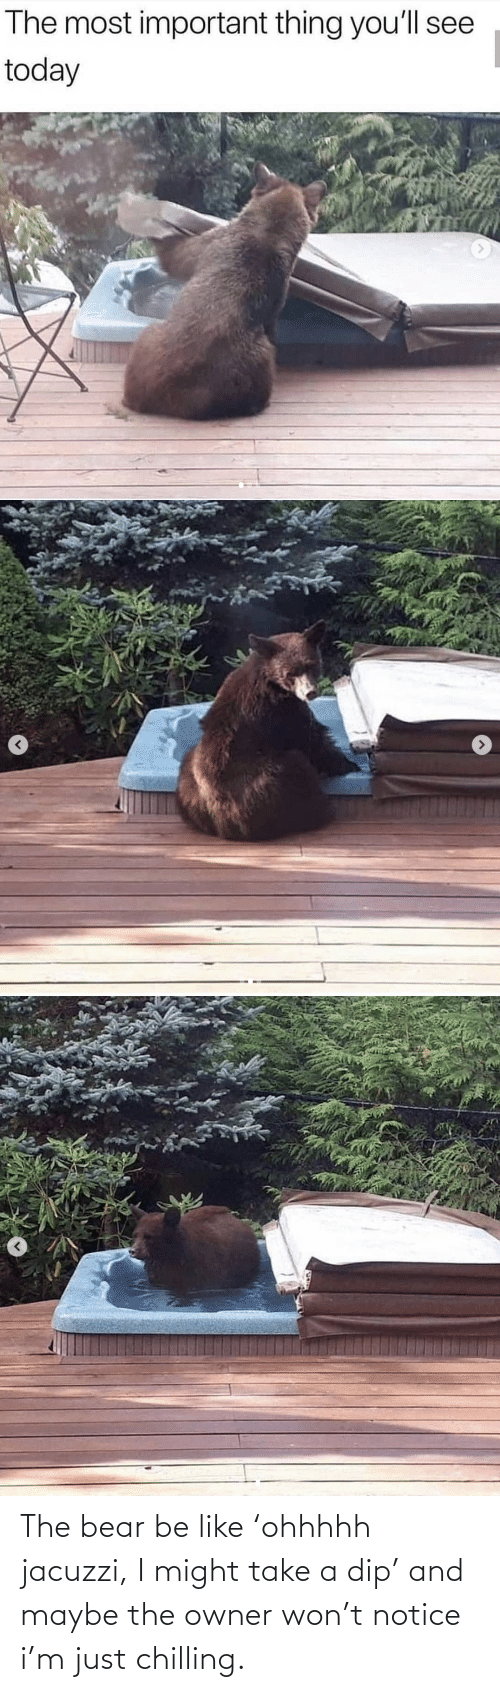 Bear: The bear be like 'ohhhhh jacuzzi, I might take a dip' and maybe the owner won't notice i'm just chilling.